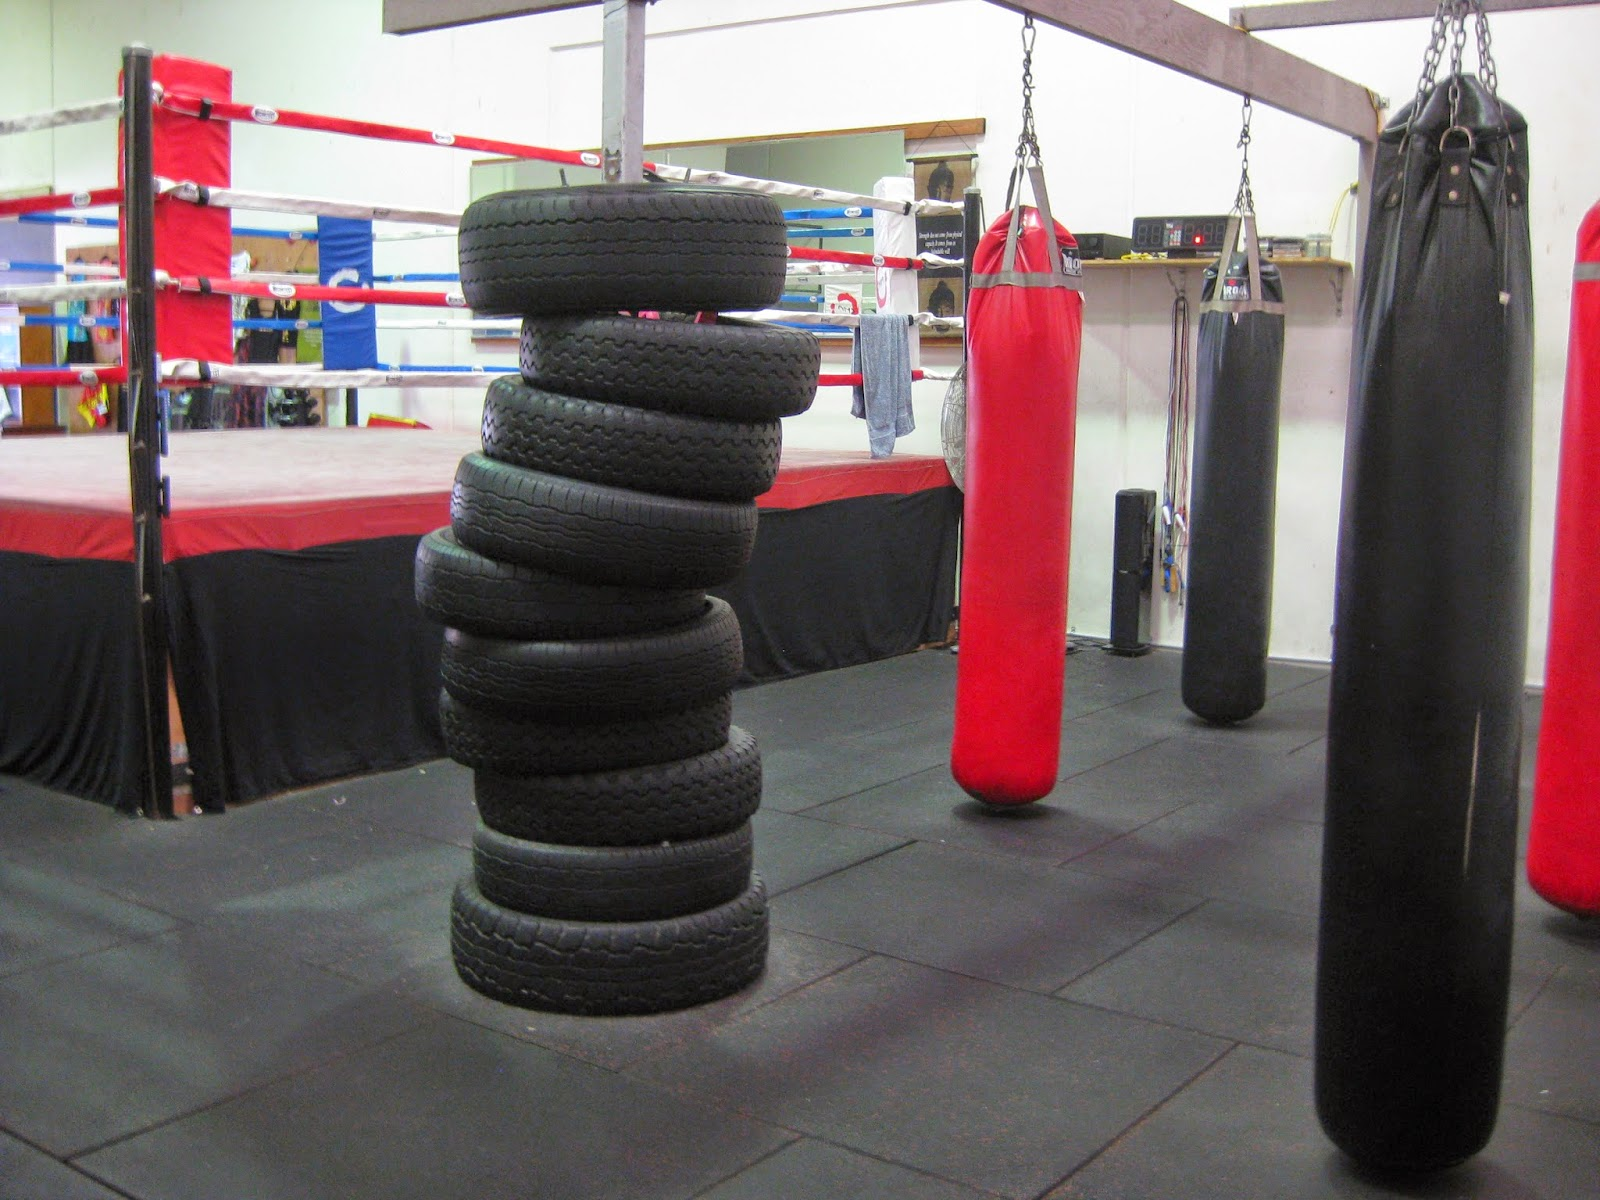 All Kinds Of Boxing Mma Muay Thai Kickboxing Punching Kicking Bags Available In Very Price The Best Quality Multipurpose